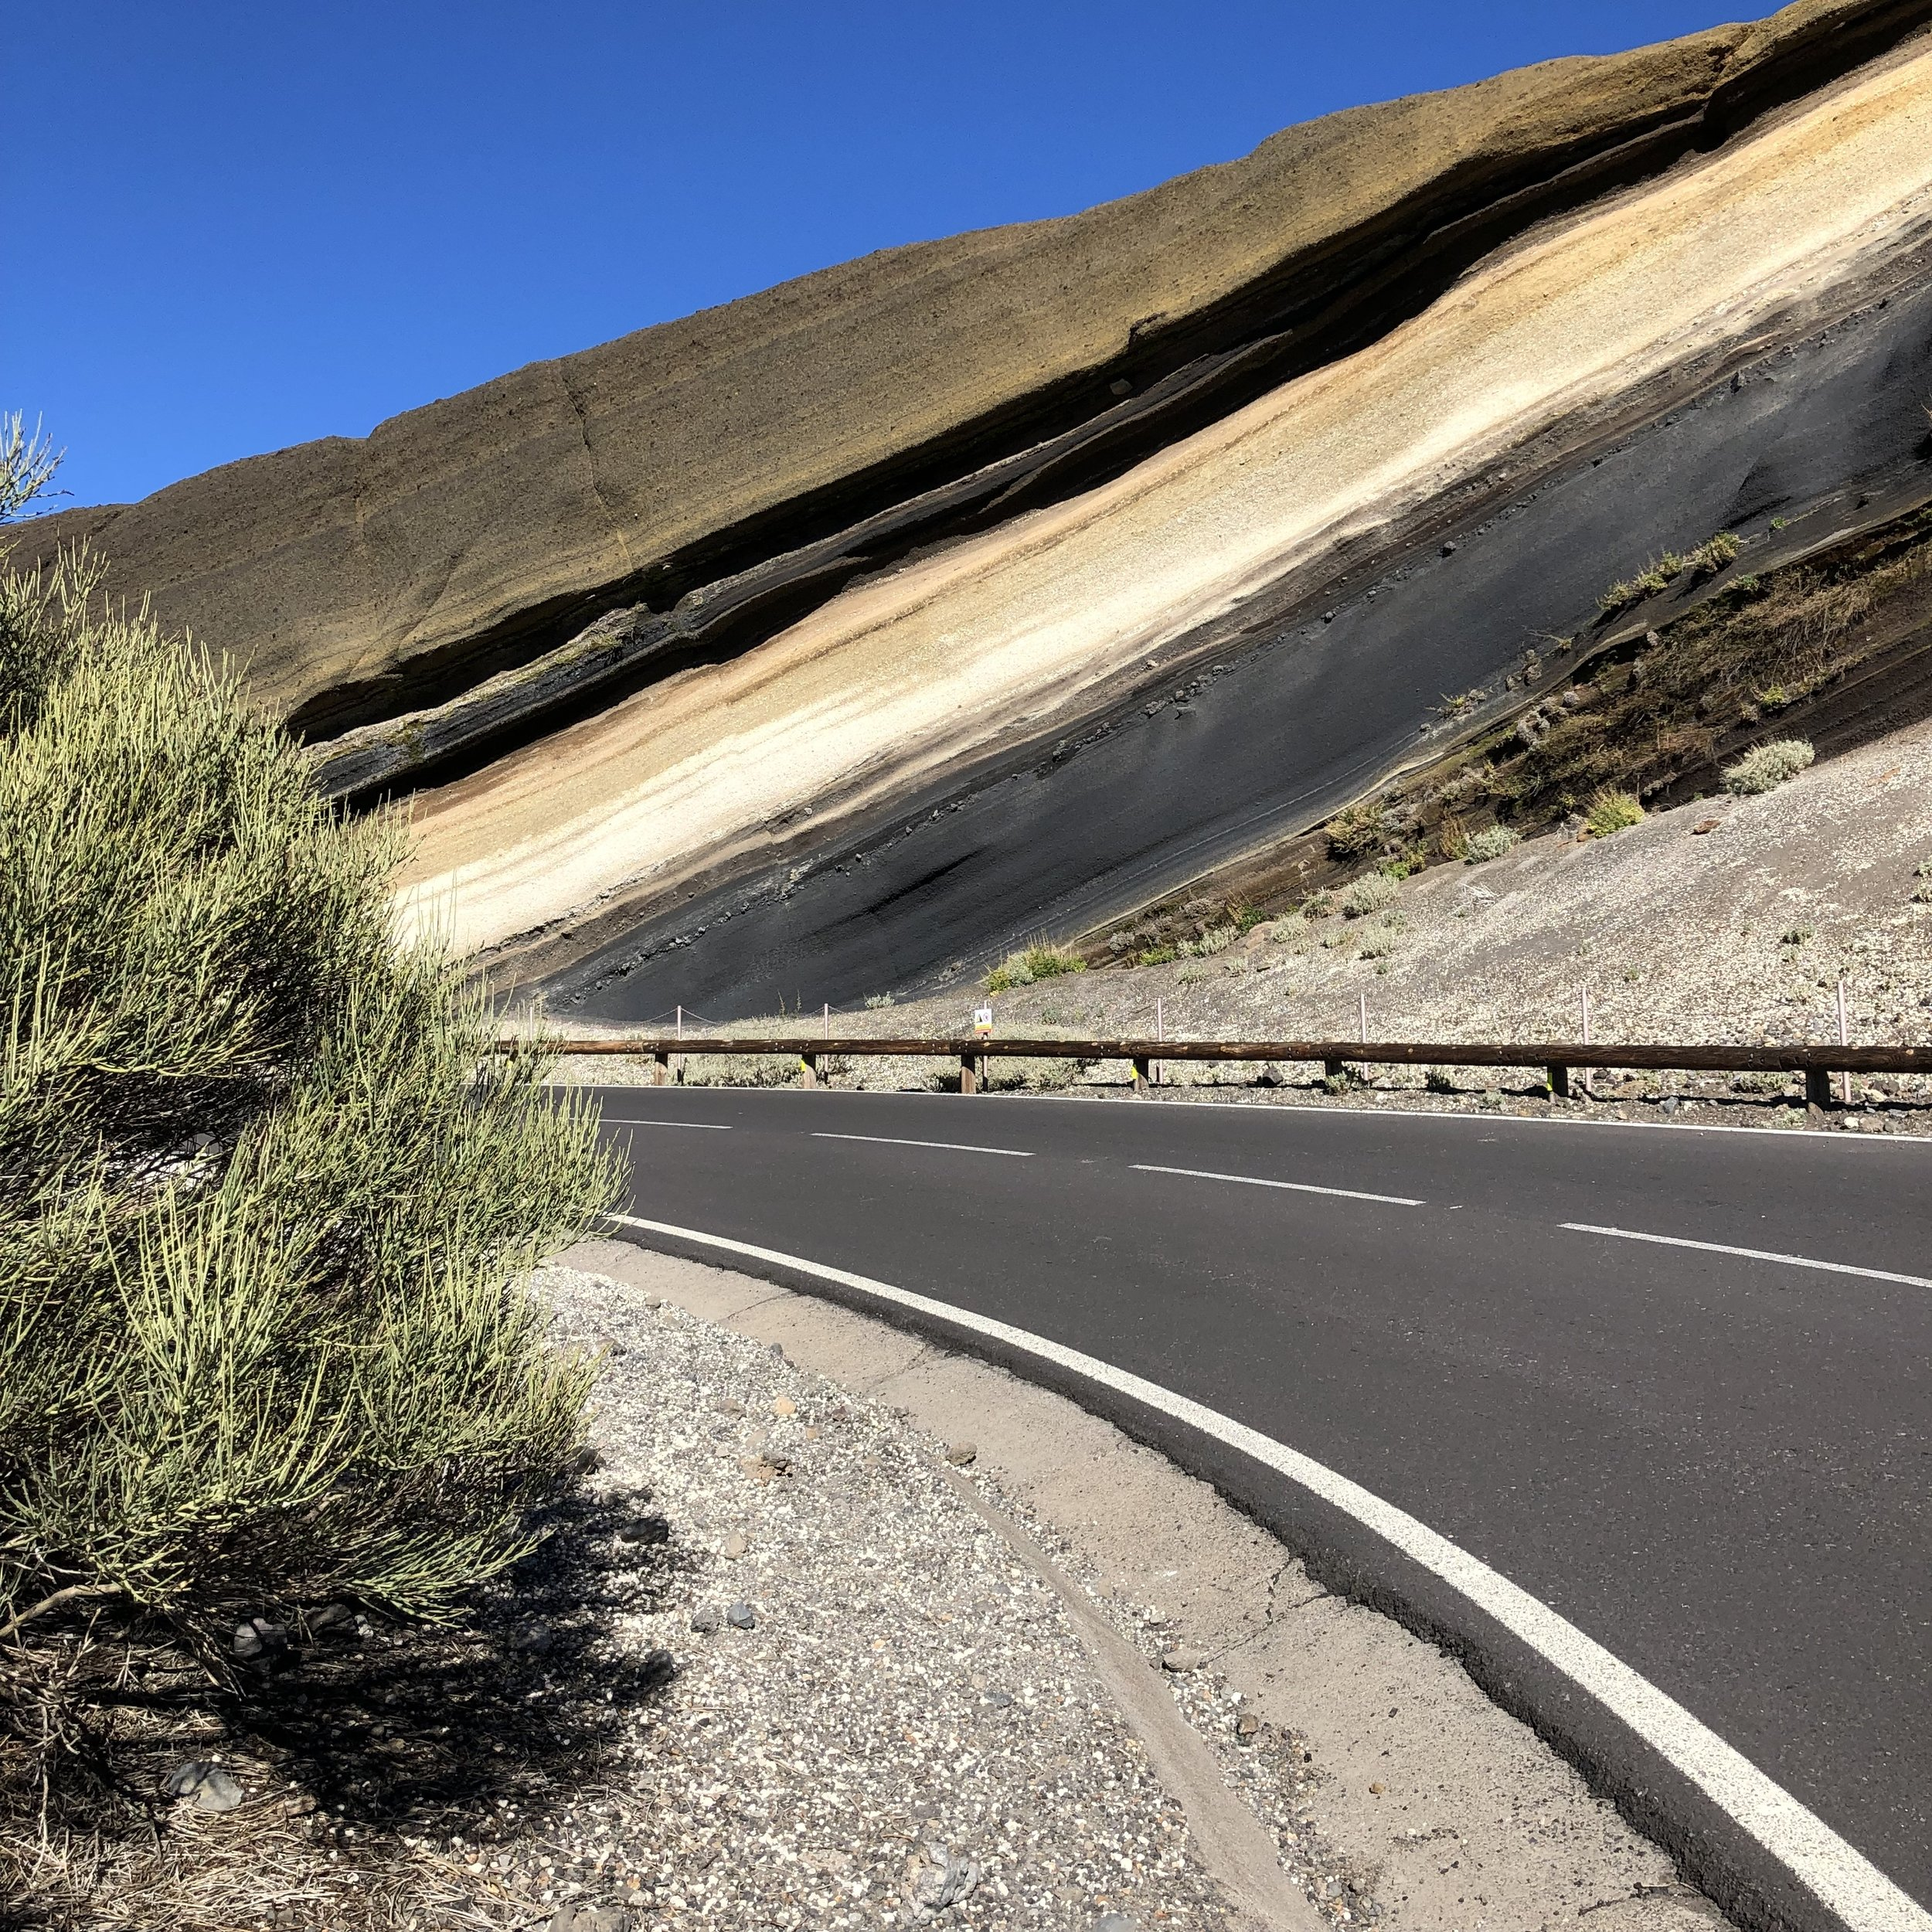 The pie-like landscape from the road in Teide.